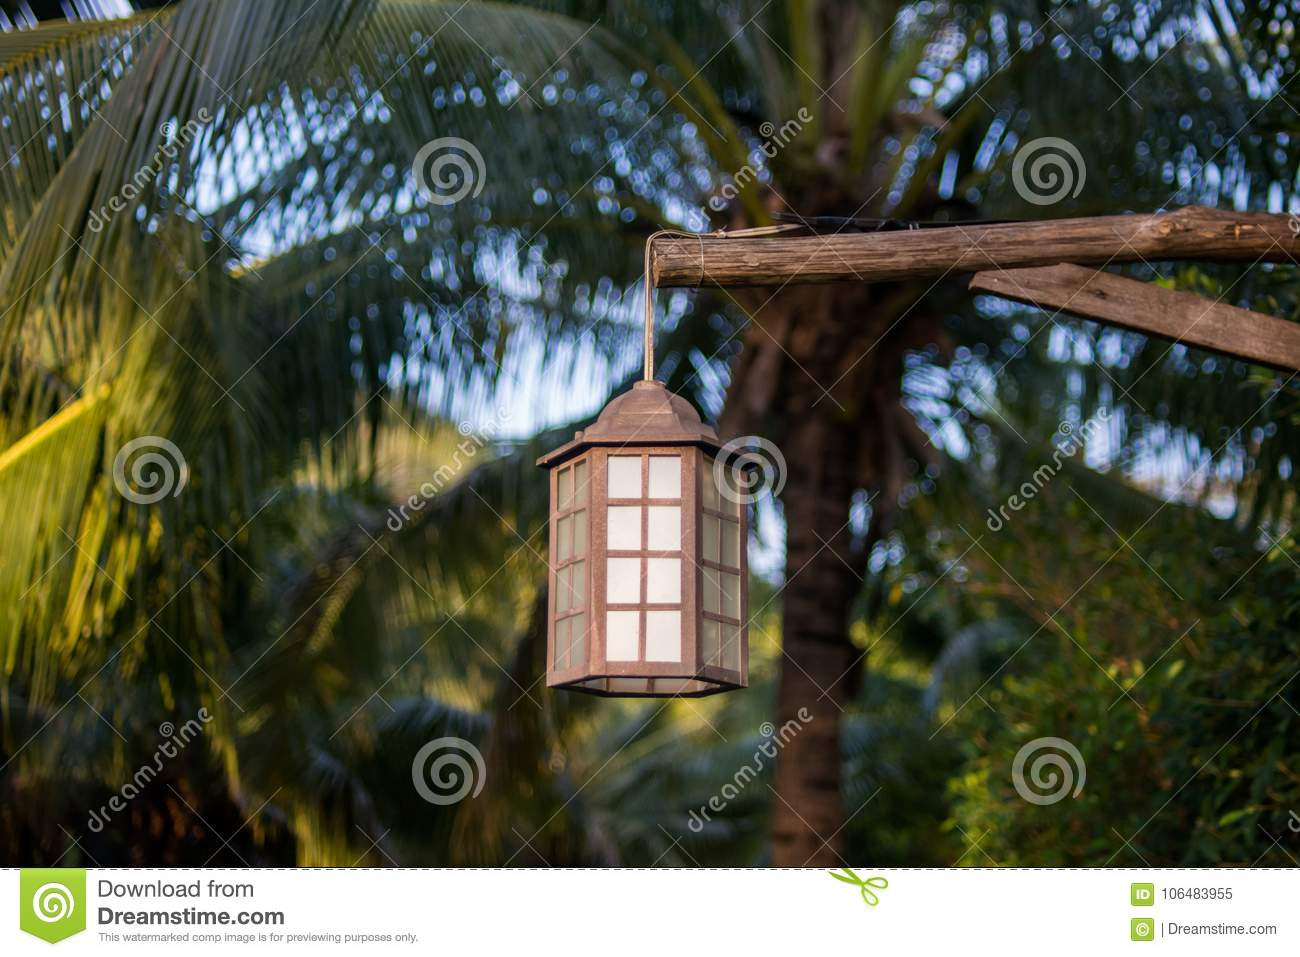 Lamp For Outdoor Lighting Hanging On Tree In The Garden Stock Image Image Of Fairytale Cozy 106483955